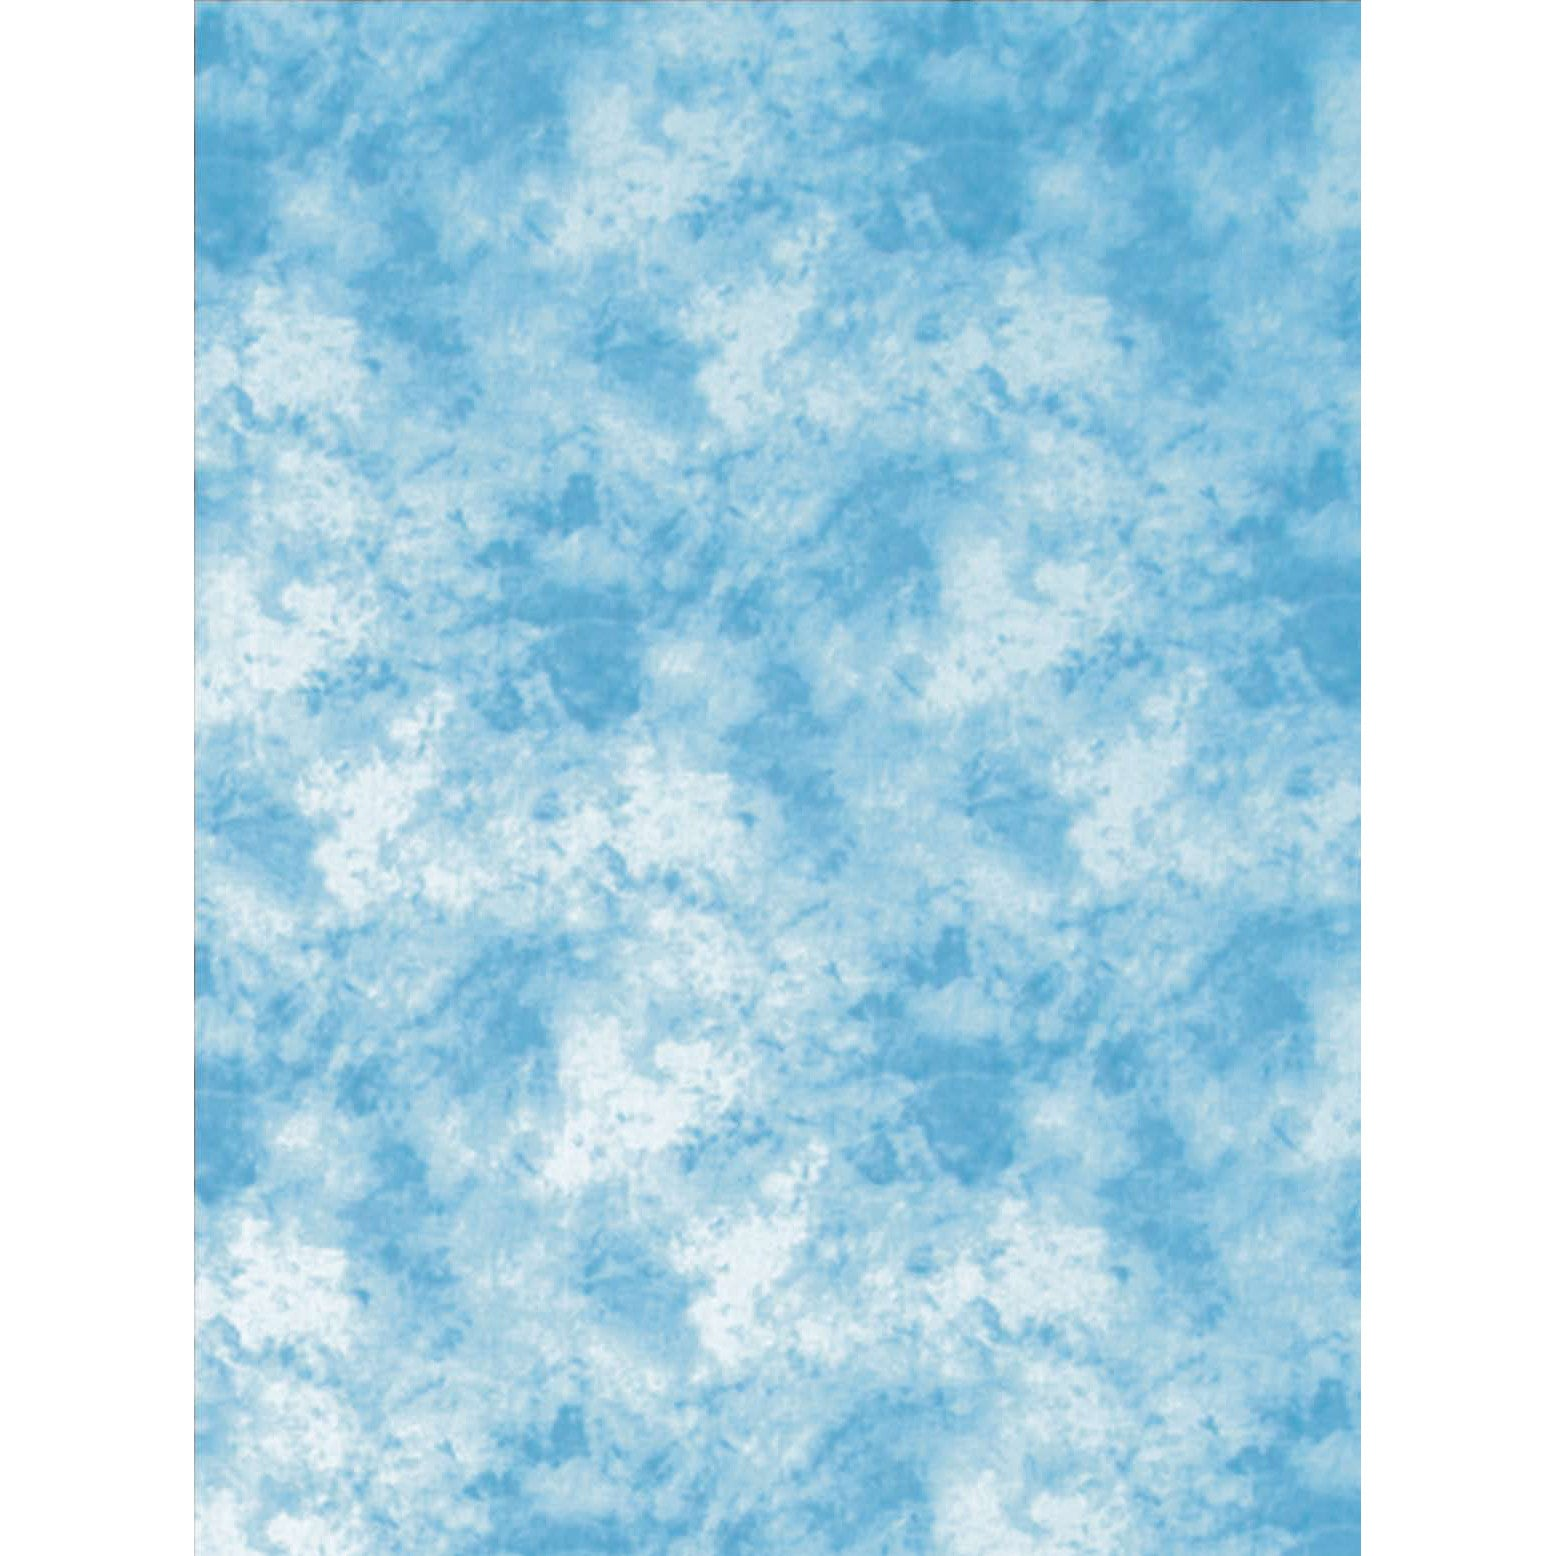 ProMaster Cloud Dyed Backdrop - 10'x20' - Light Blue